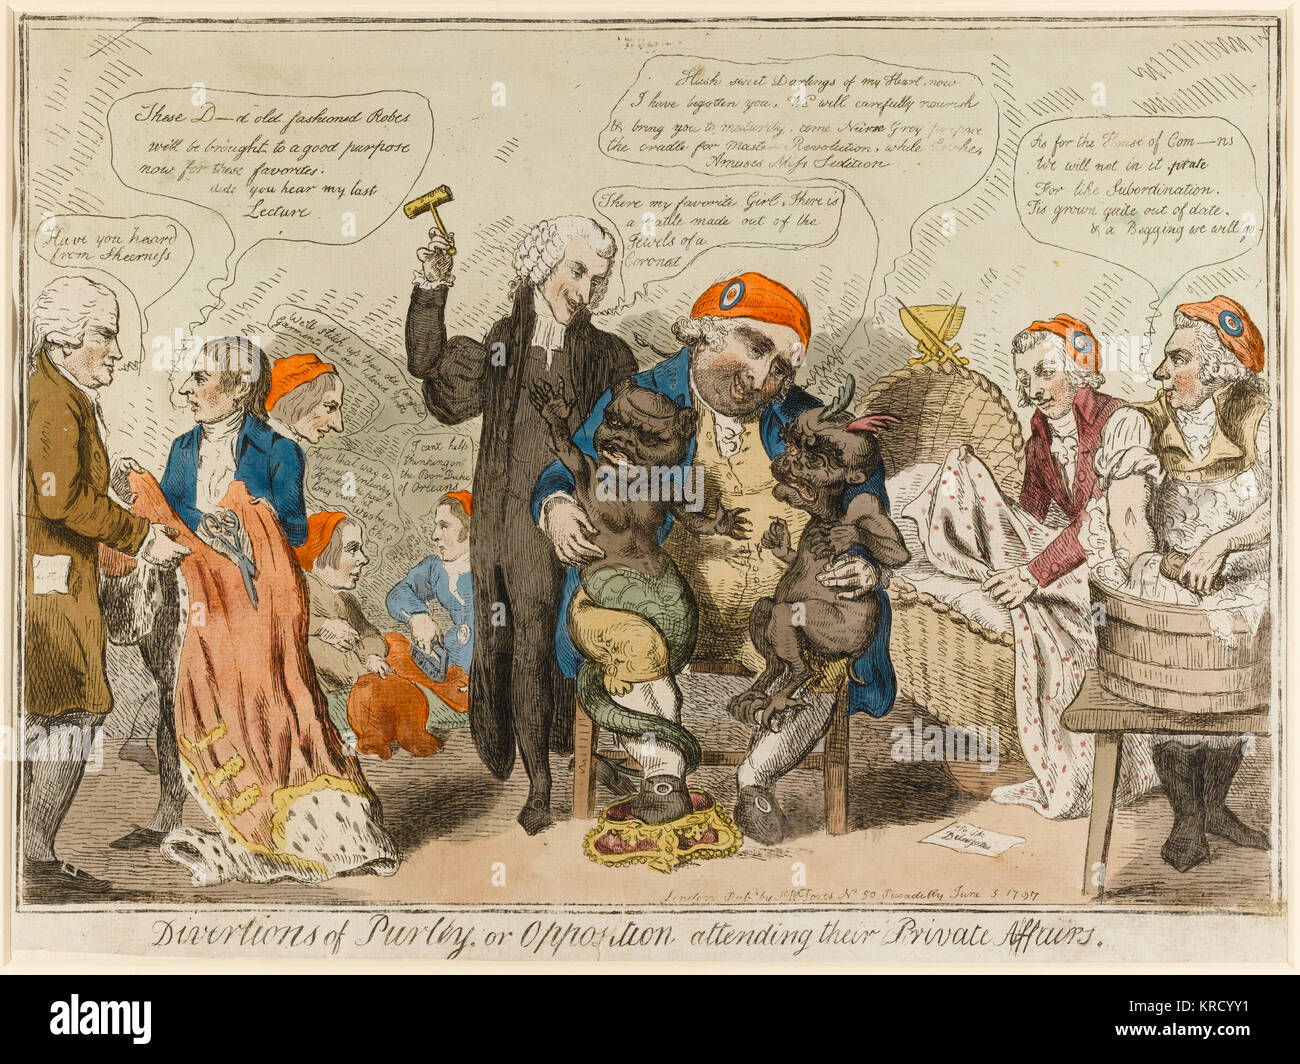 Satirical cartoon, Divertions [Diversions] of Purley, or Opposition attending their private affairs.  An inverted - Stock Image